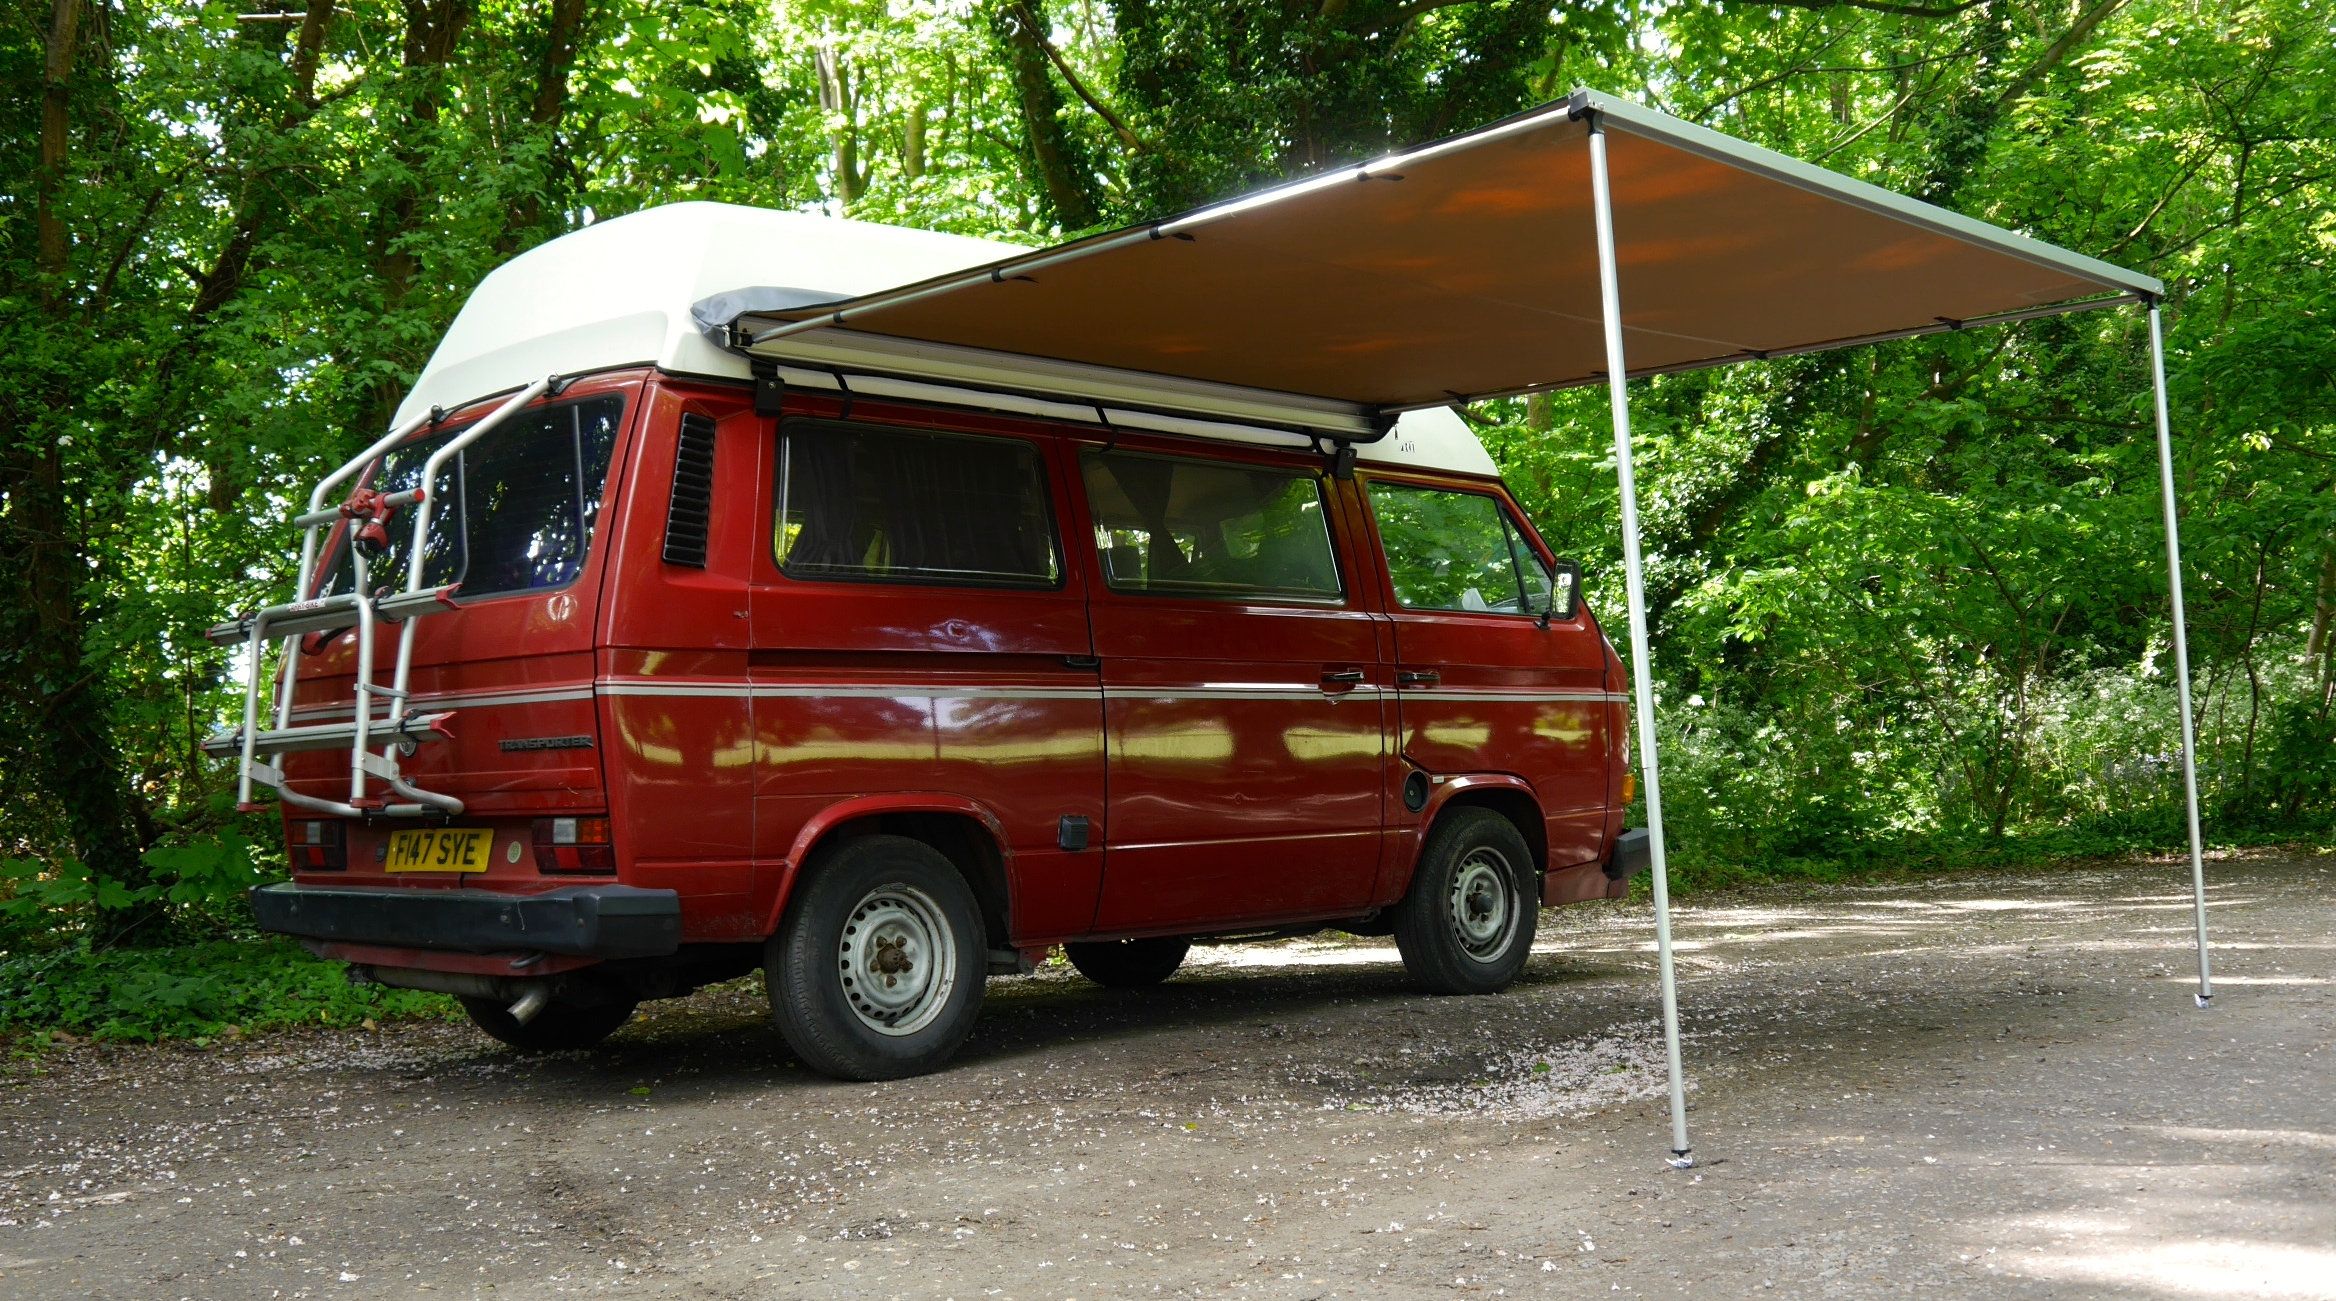 vw t25 t3 vanagon arb 2500mm x 2500mm awning with cvc. Black Bedroom Furniture Sets. Home Design Ideas